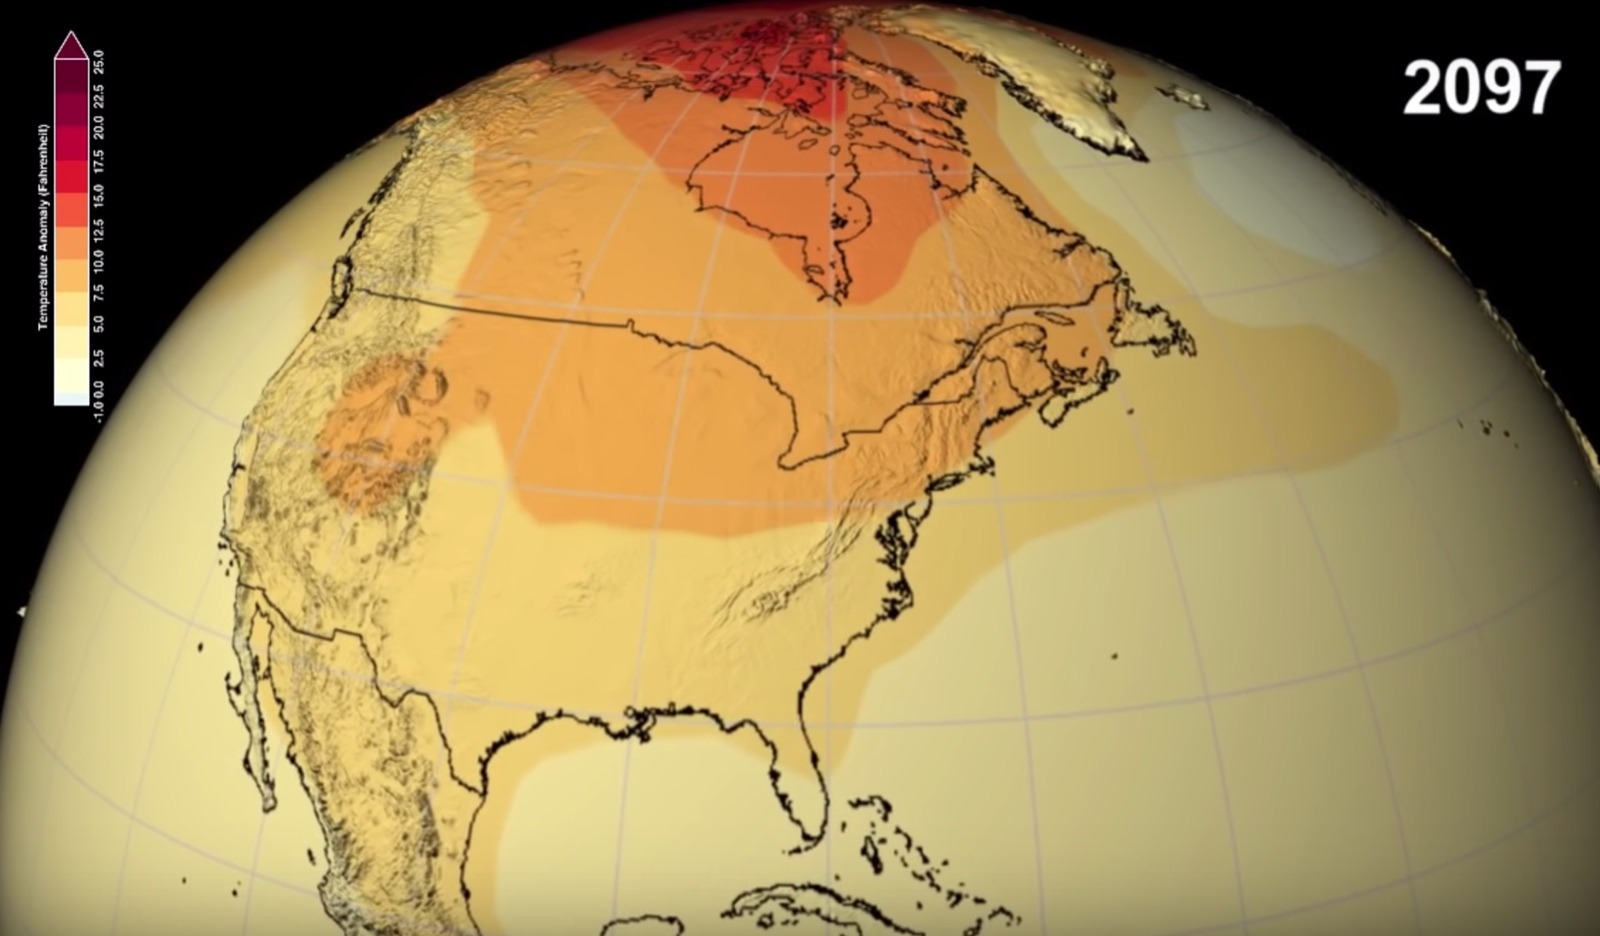 Temperatures are expected to dramatically rise everywhere but the Arctic and midsection of the US, including the Rockies, will experience even hotter conditions.  Image courtesy NASA . Check out videos at end of Olsen's analysis